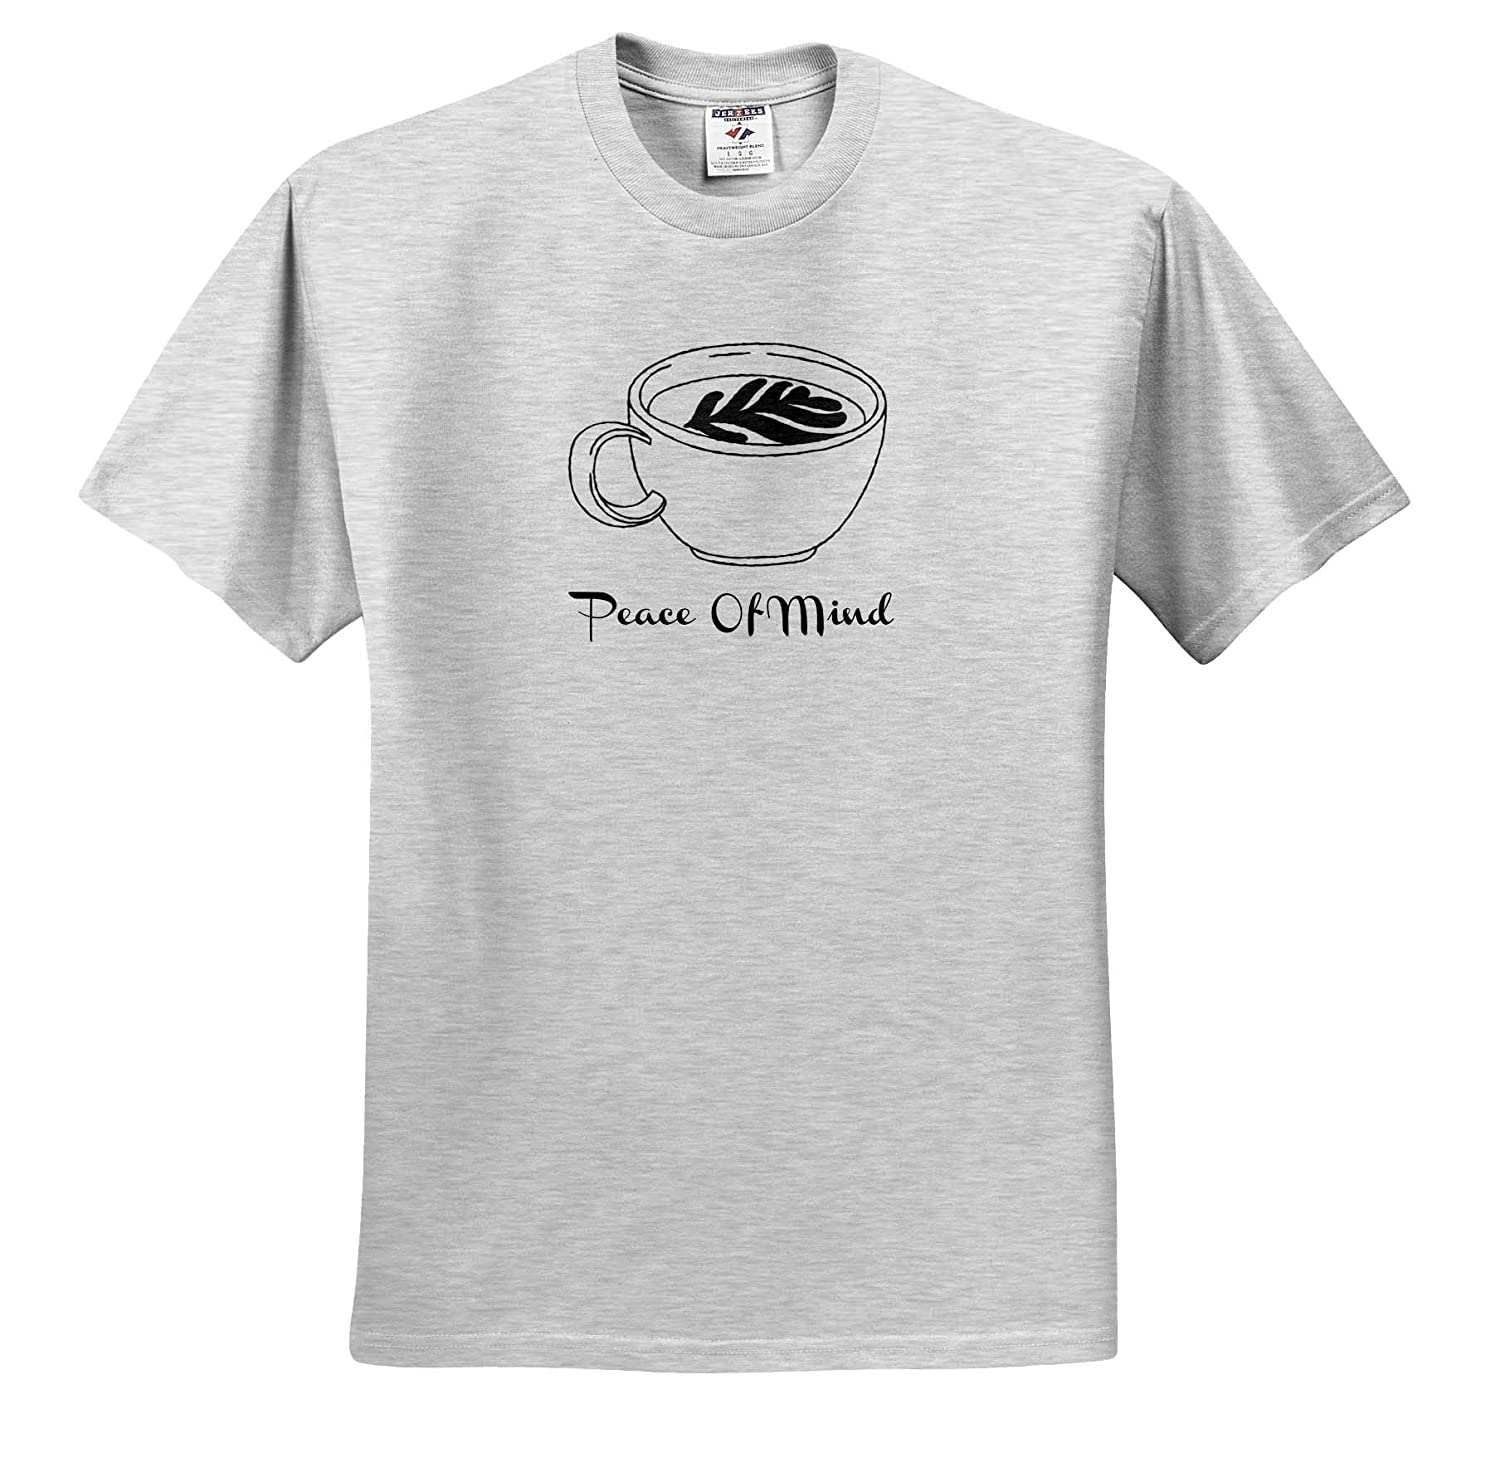 ts/_321053 3dRose Carrie Quote Image Image of Coffee Cup with Quote Peace of Mind Adult T-Shirt XL